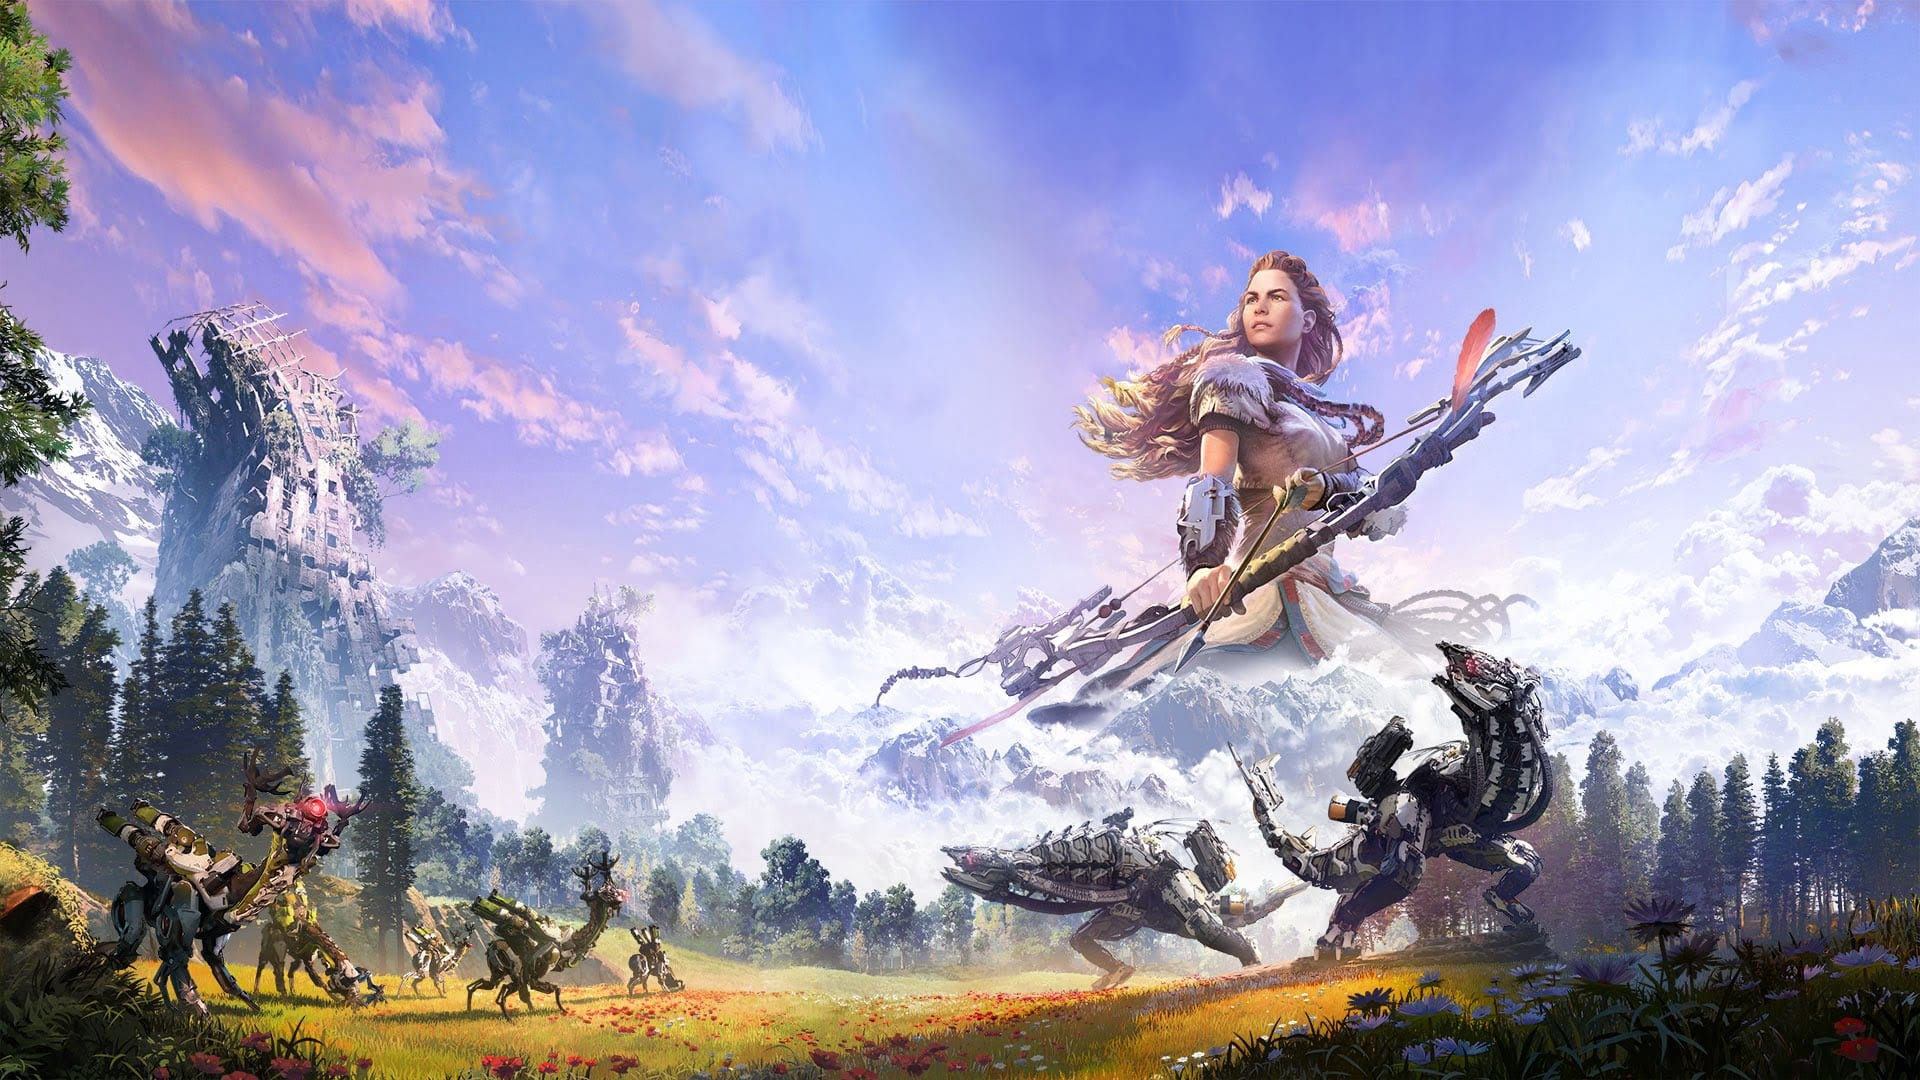 AMD will complete its Ryzen processors with the PC version of Horizon Zero Dawn Complete Edition